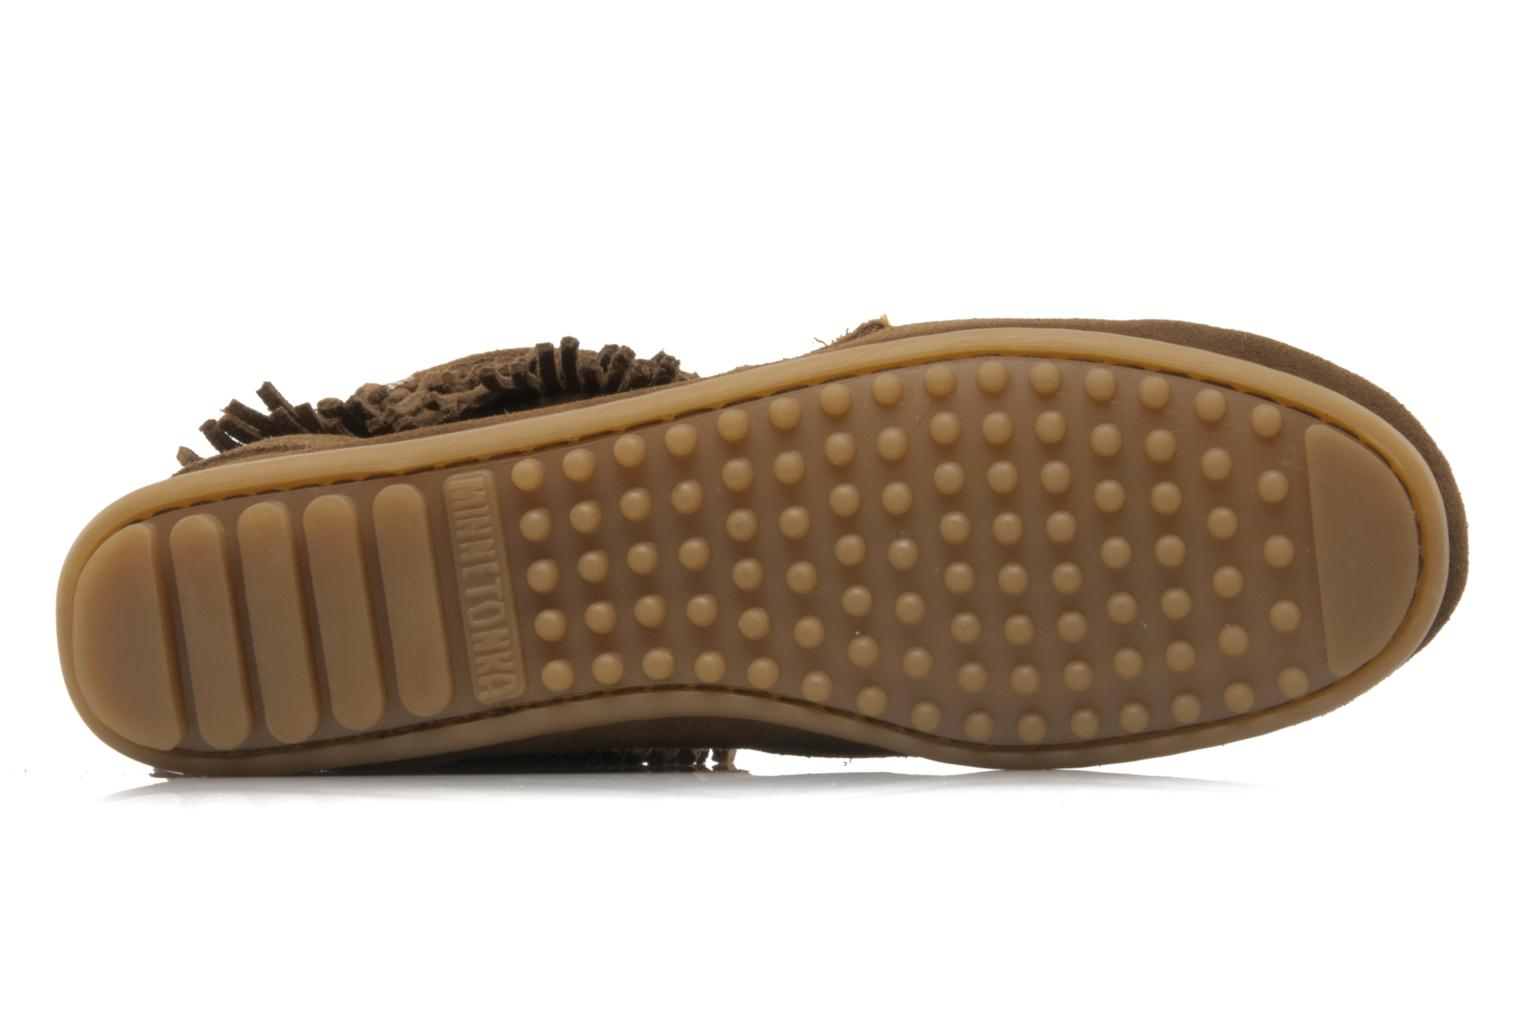 Bottines et boots Minnetonka DOUBLE FRINGE TRAMPER Marron vue haut